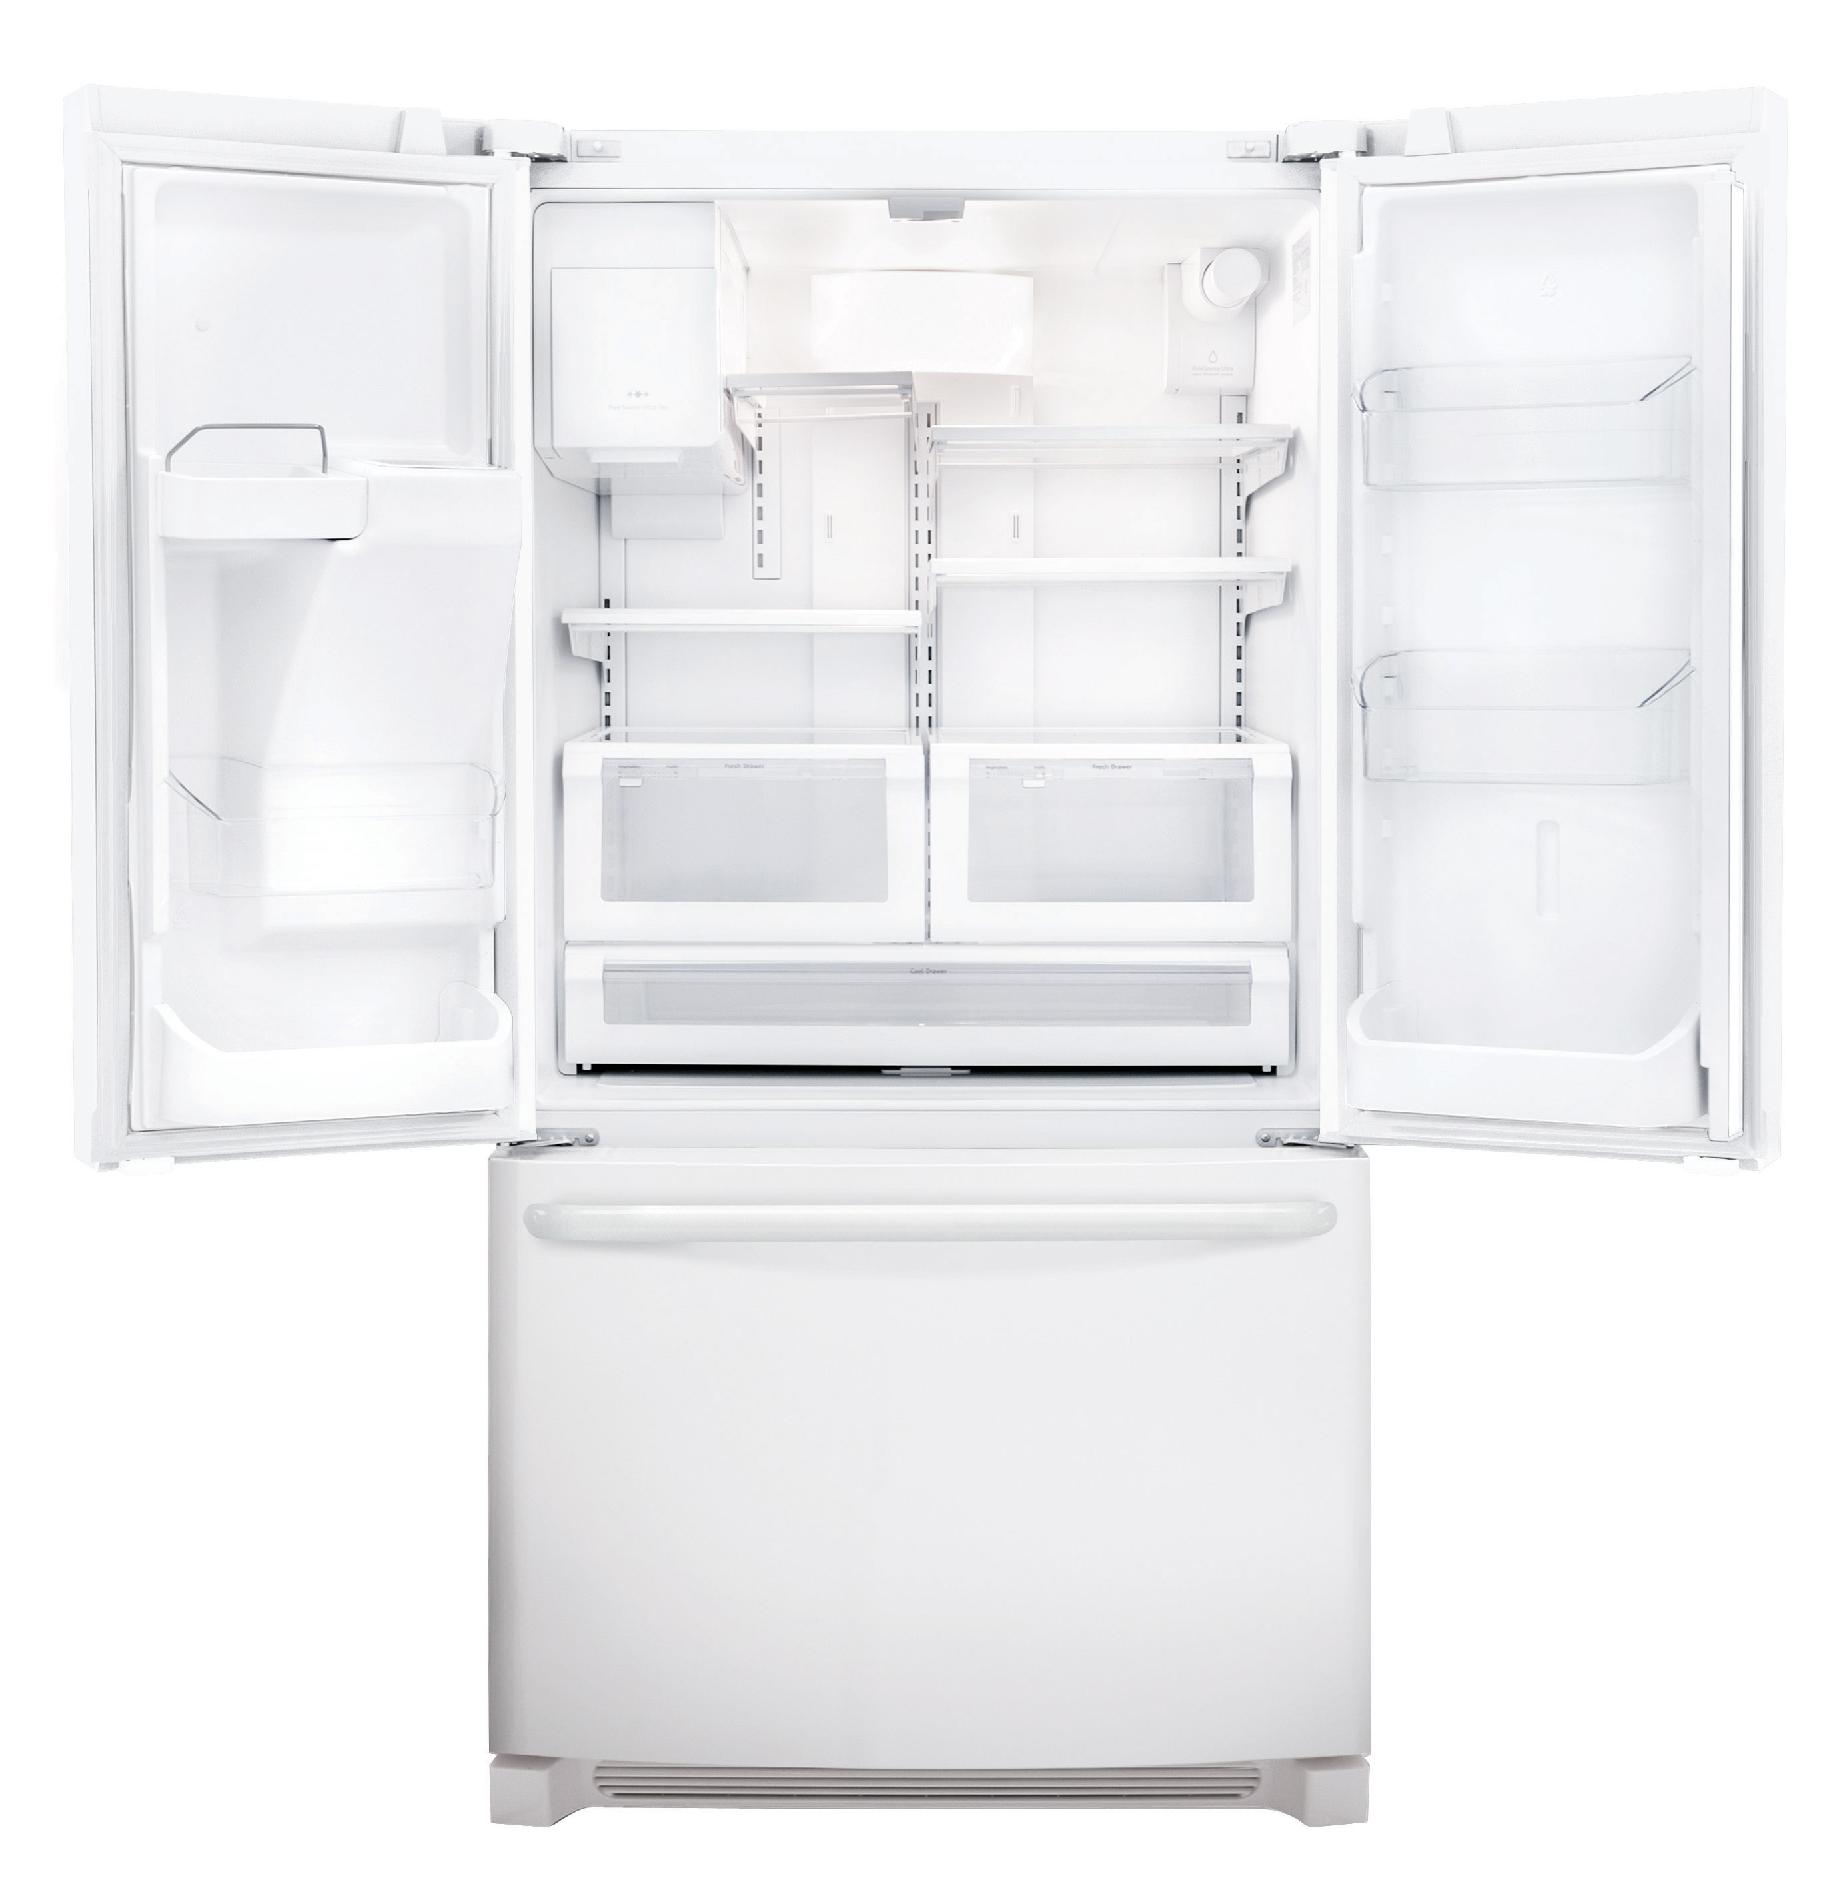 Frigidaire FFHB2740PP 26.7 cu. ft. French Door Refrigerator - Pearl White